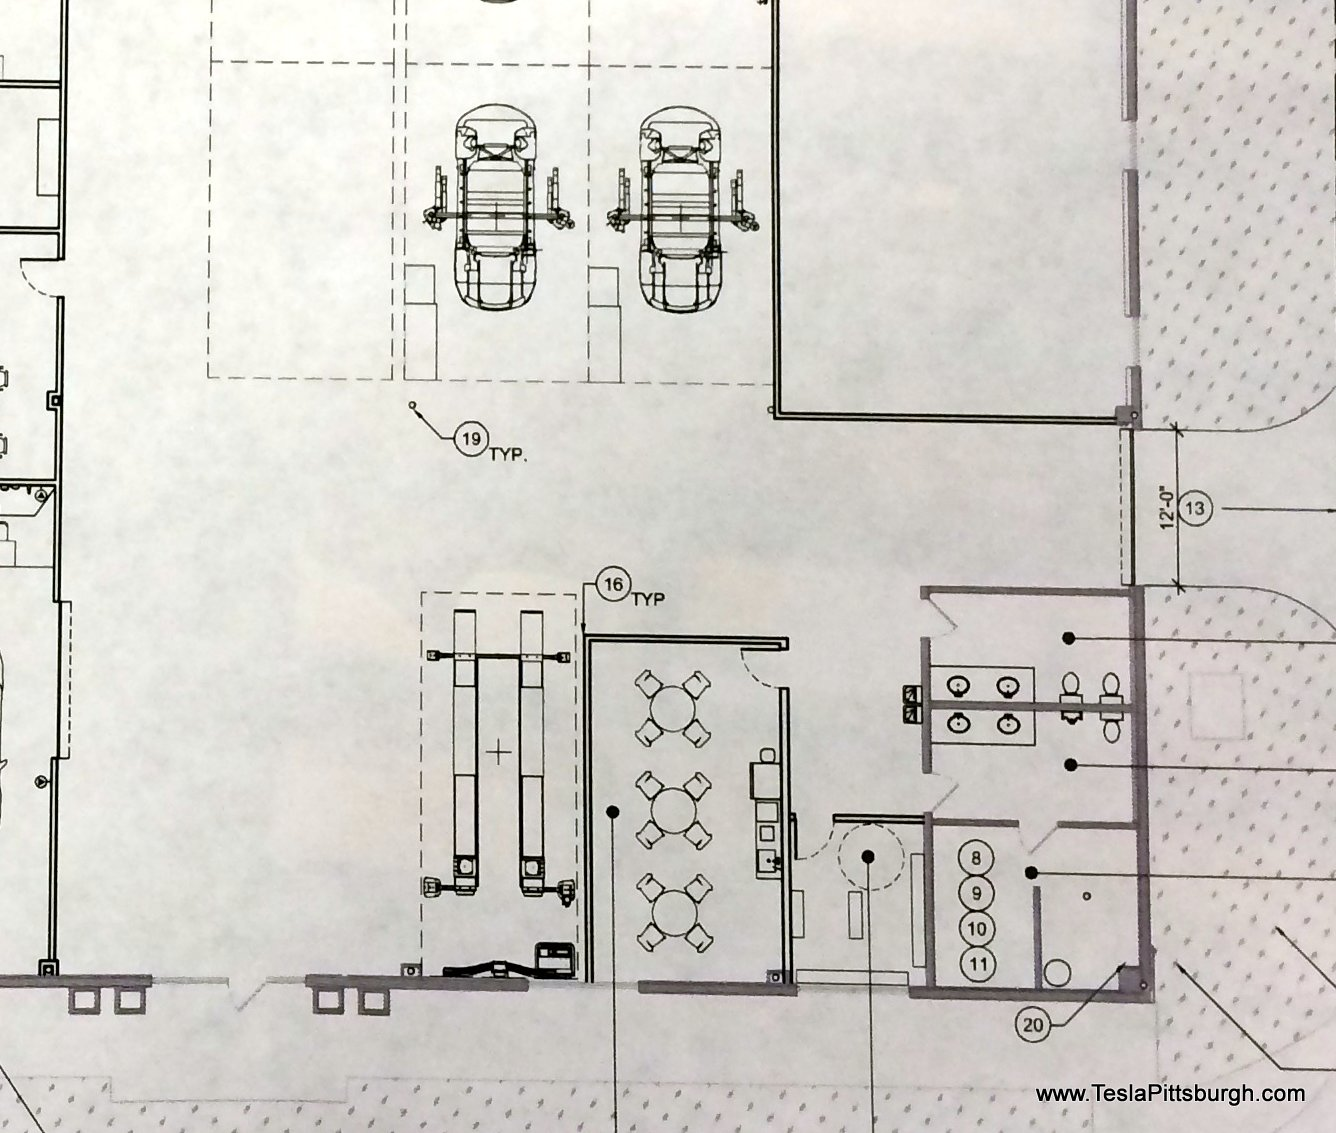 pittsburgh tesla service floorplan of employee area